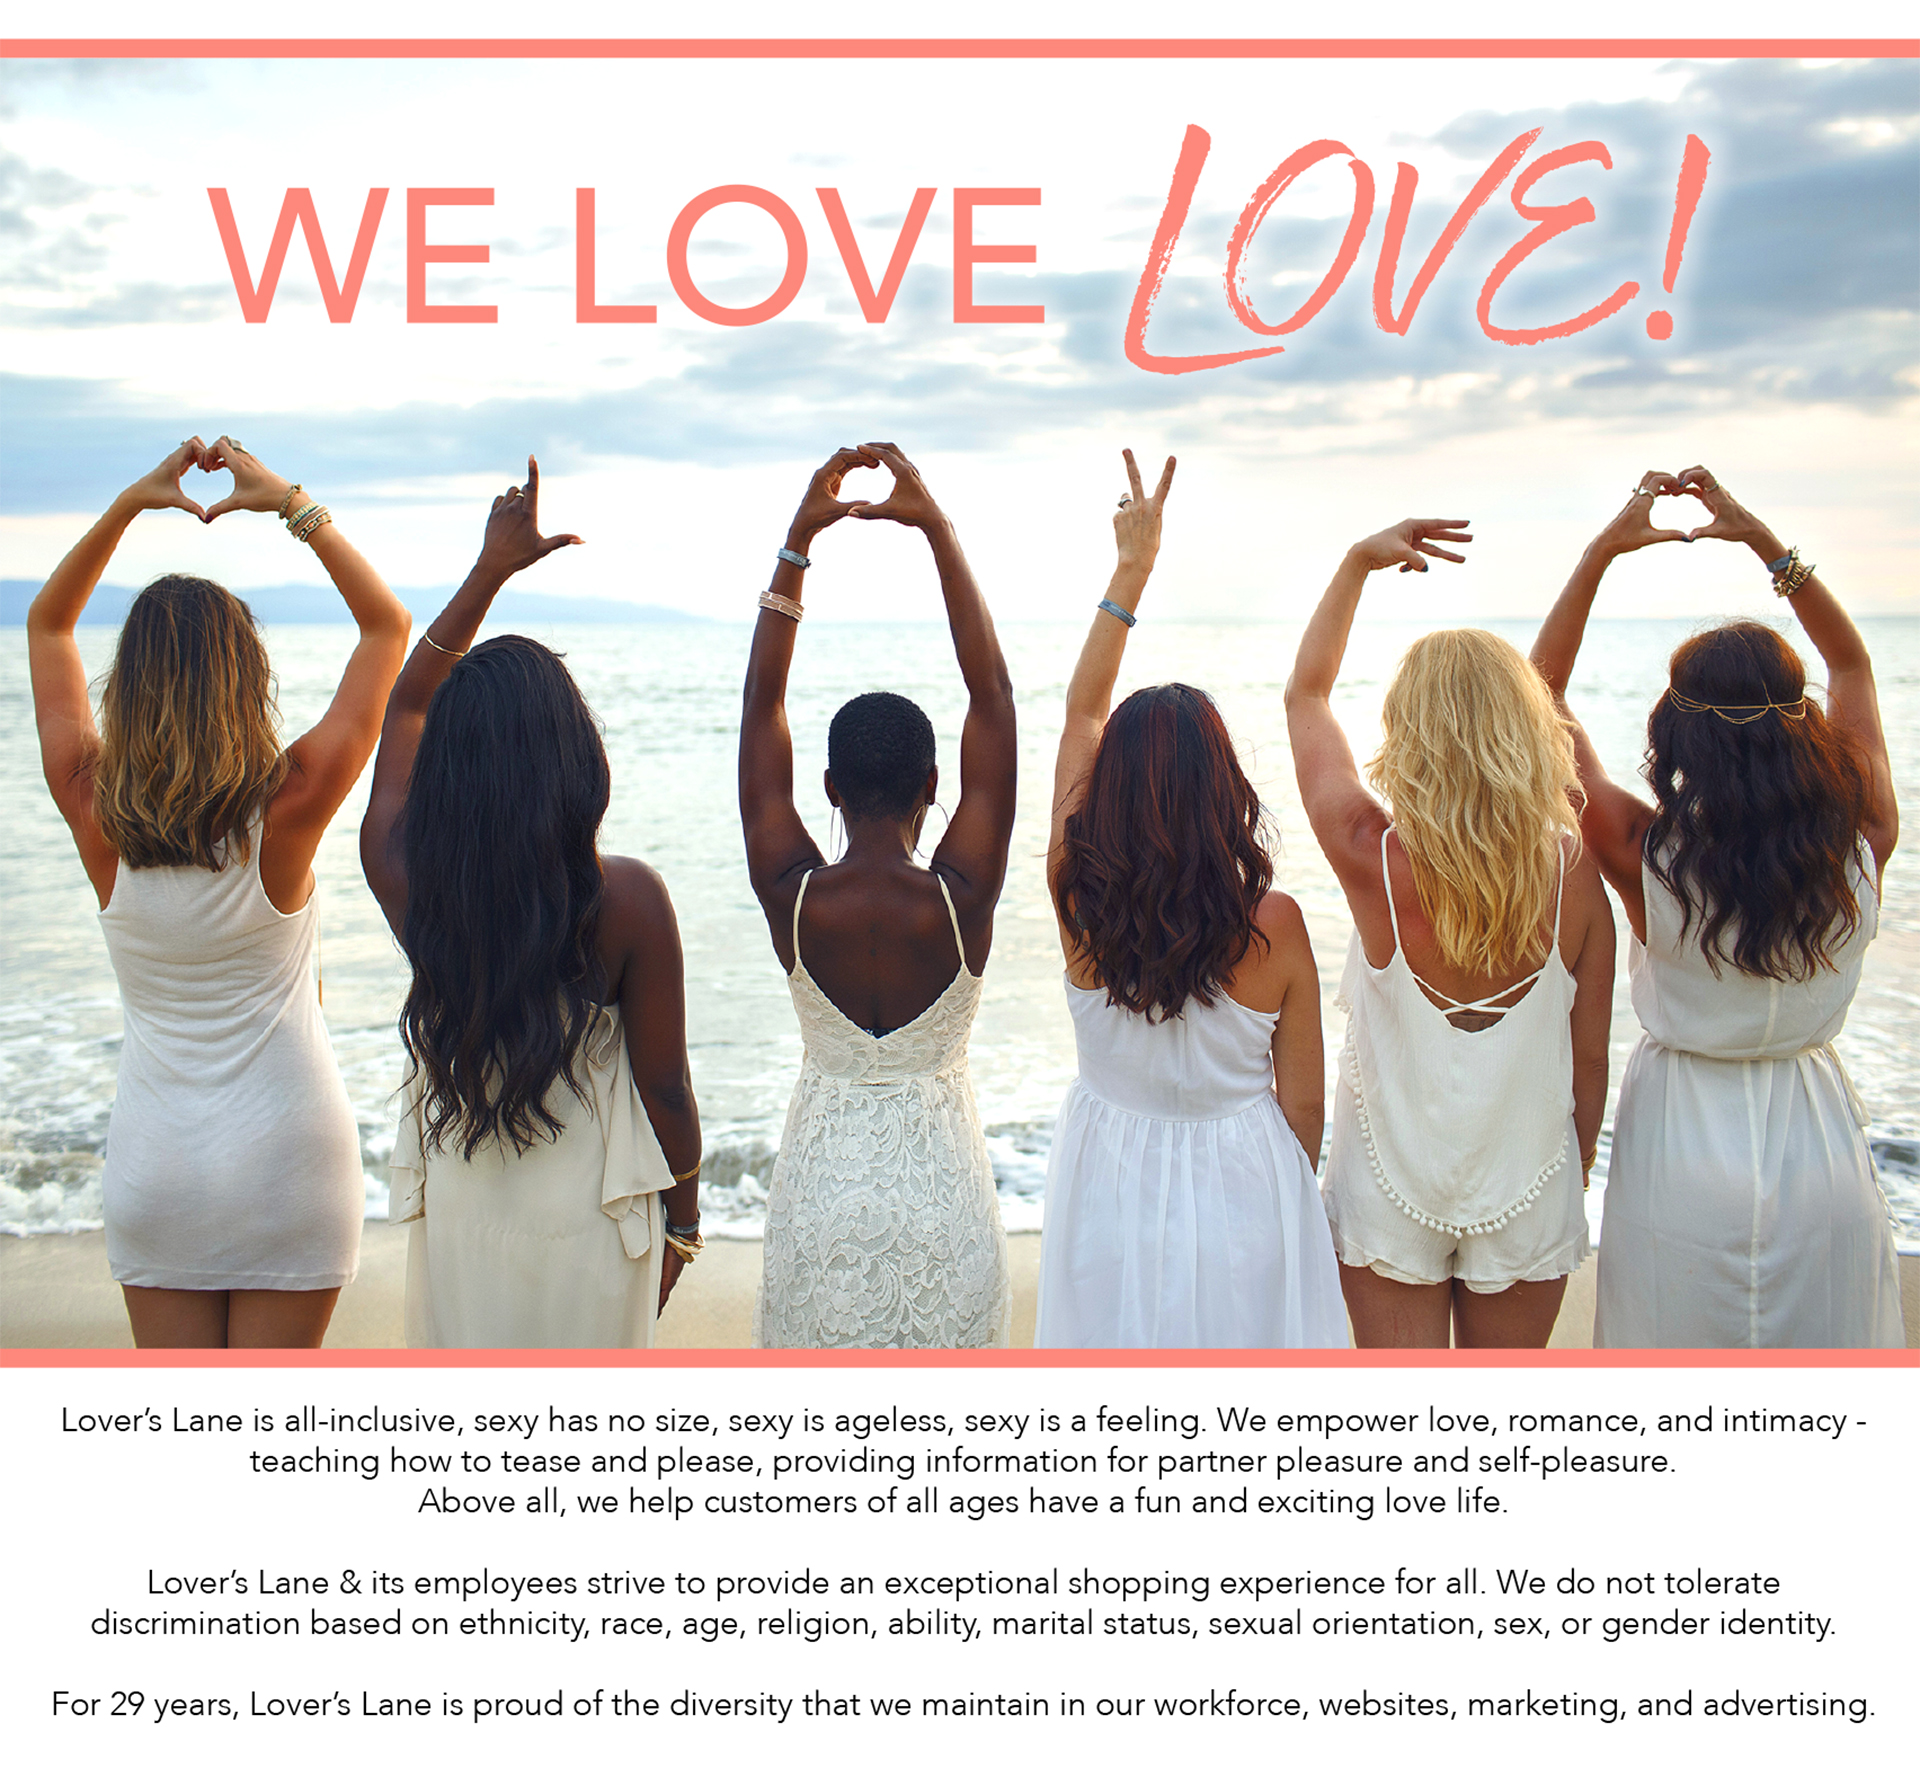 Lover's Lane is all-inclusive, sexy has no size, sexy is ageless, sexy is a feeling. We empower love,  romance, and intimacy - teaching how to tease and please, providing information for partner pleasure and self-pleasure. Above all, we help customers of